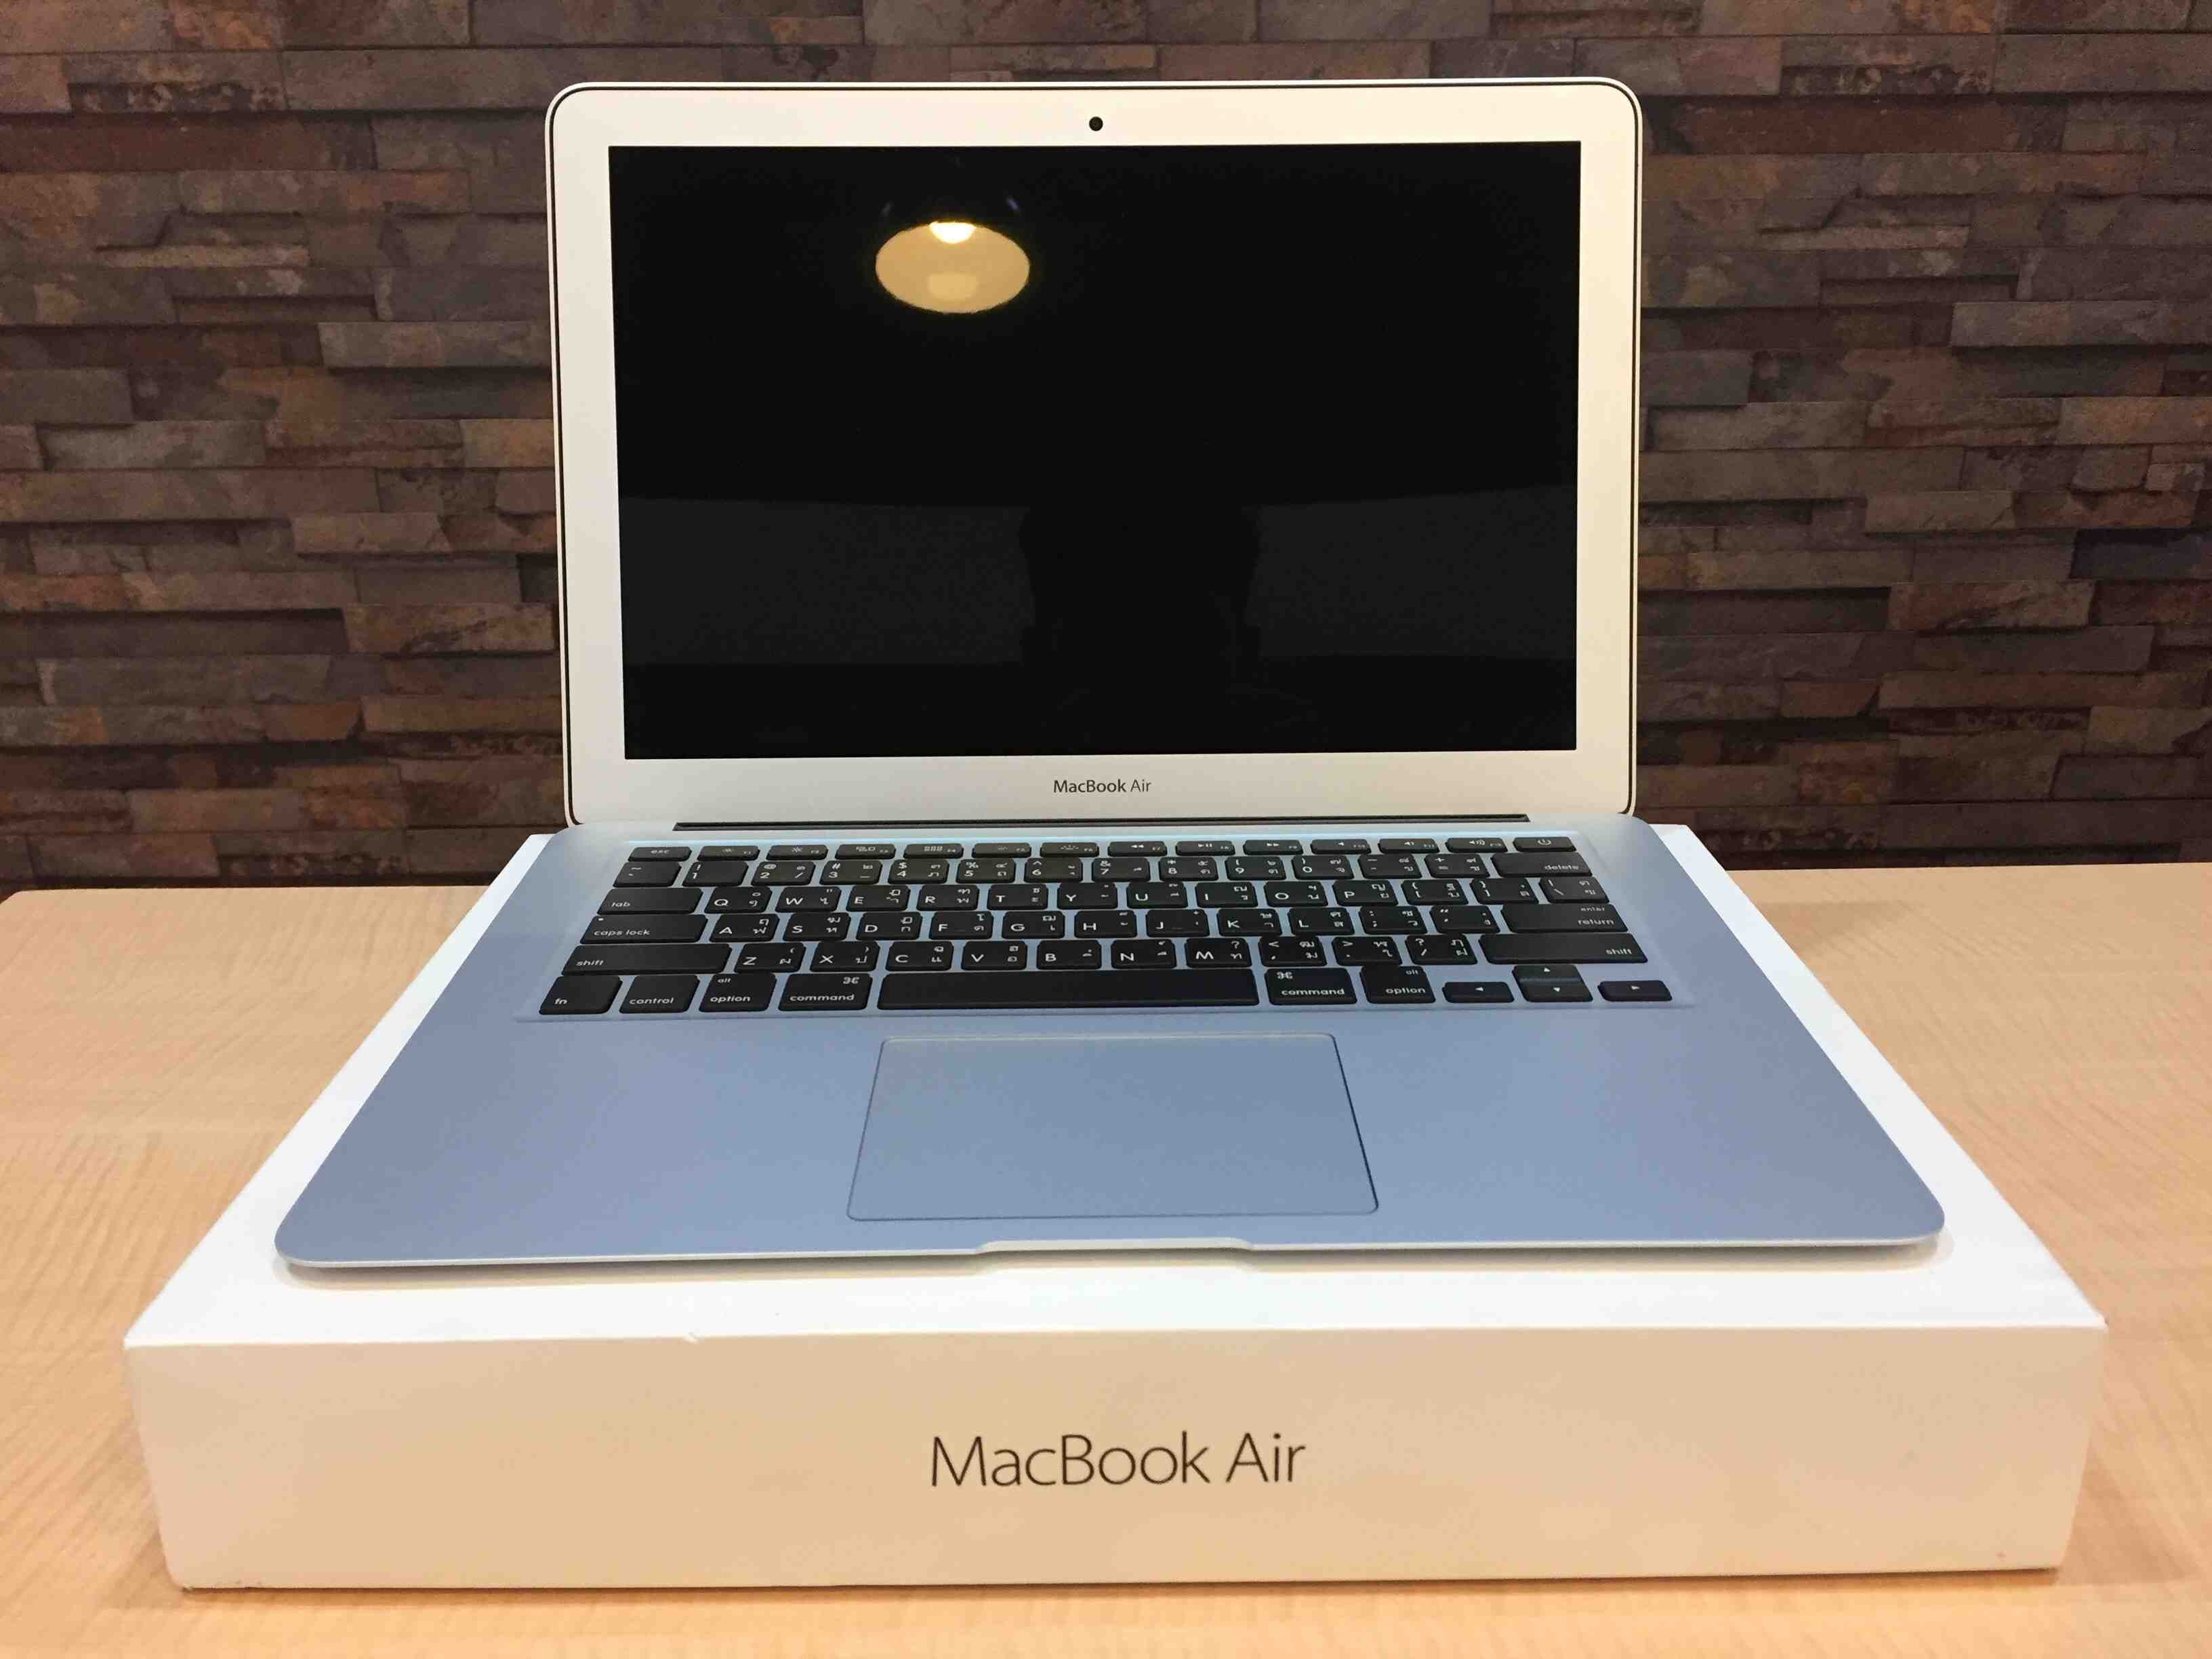 macbook air 13 inch early 2015 powermac. Black Bedroom Furniture Sets. Home Design Ideas